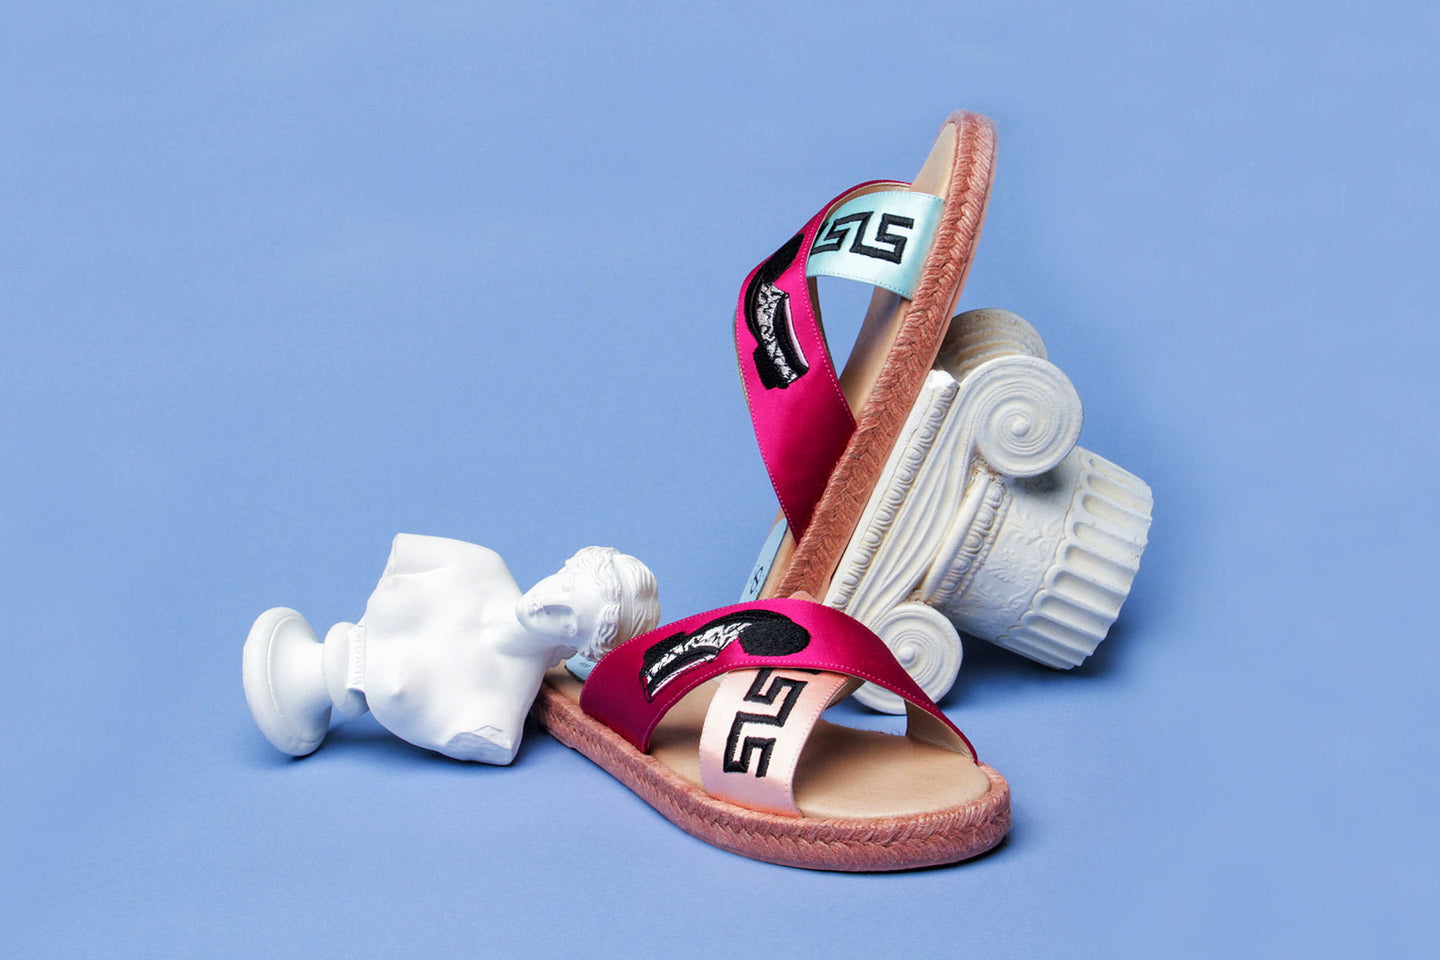 Wear fun on your feet!